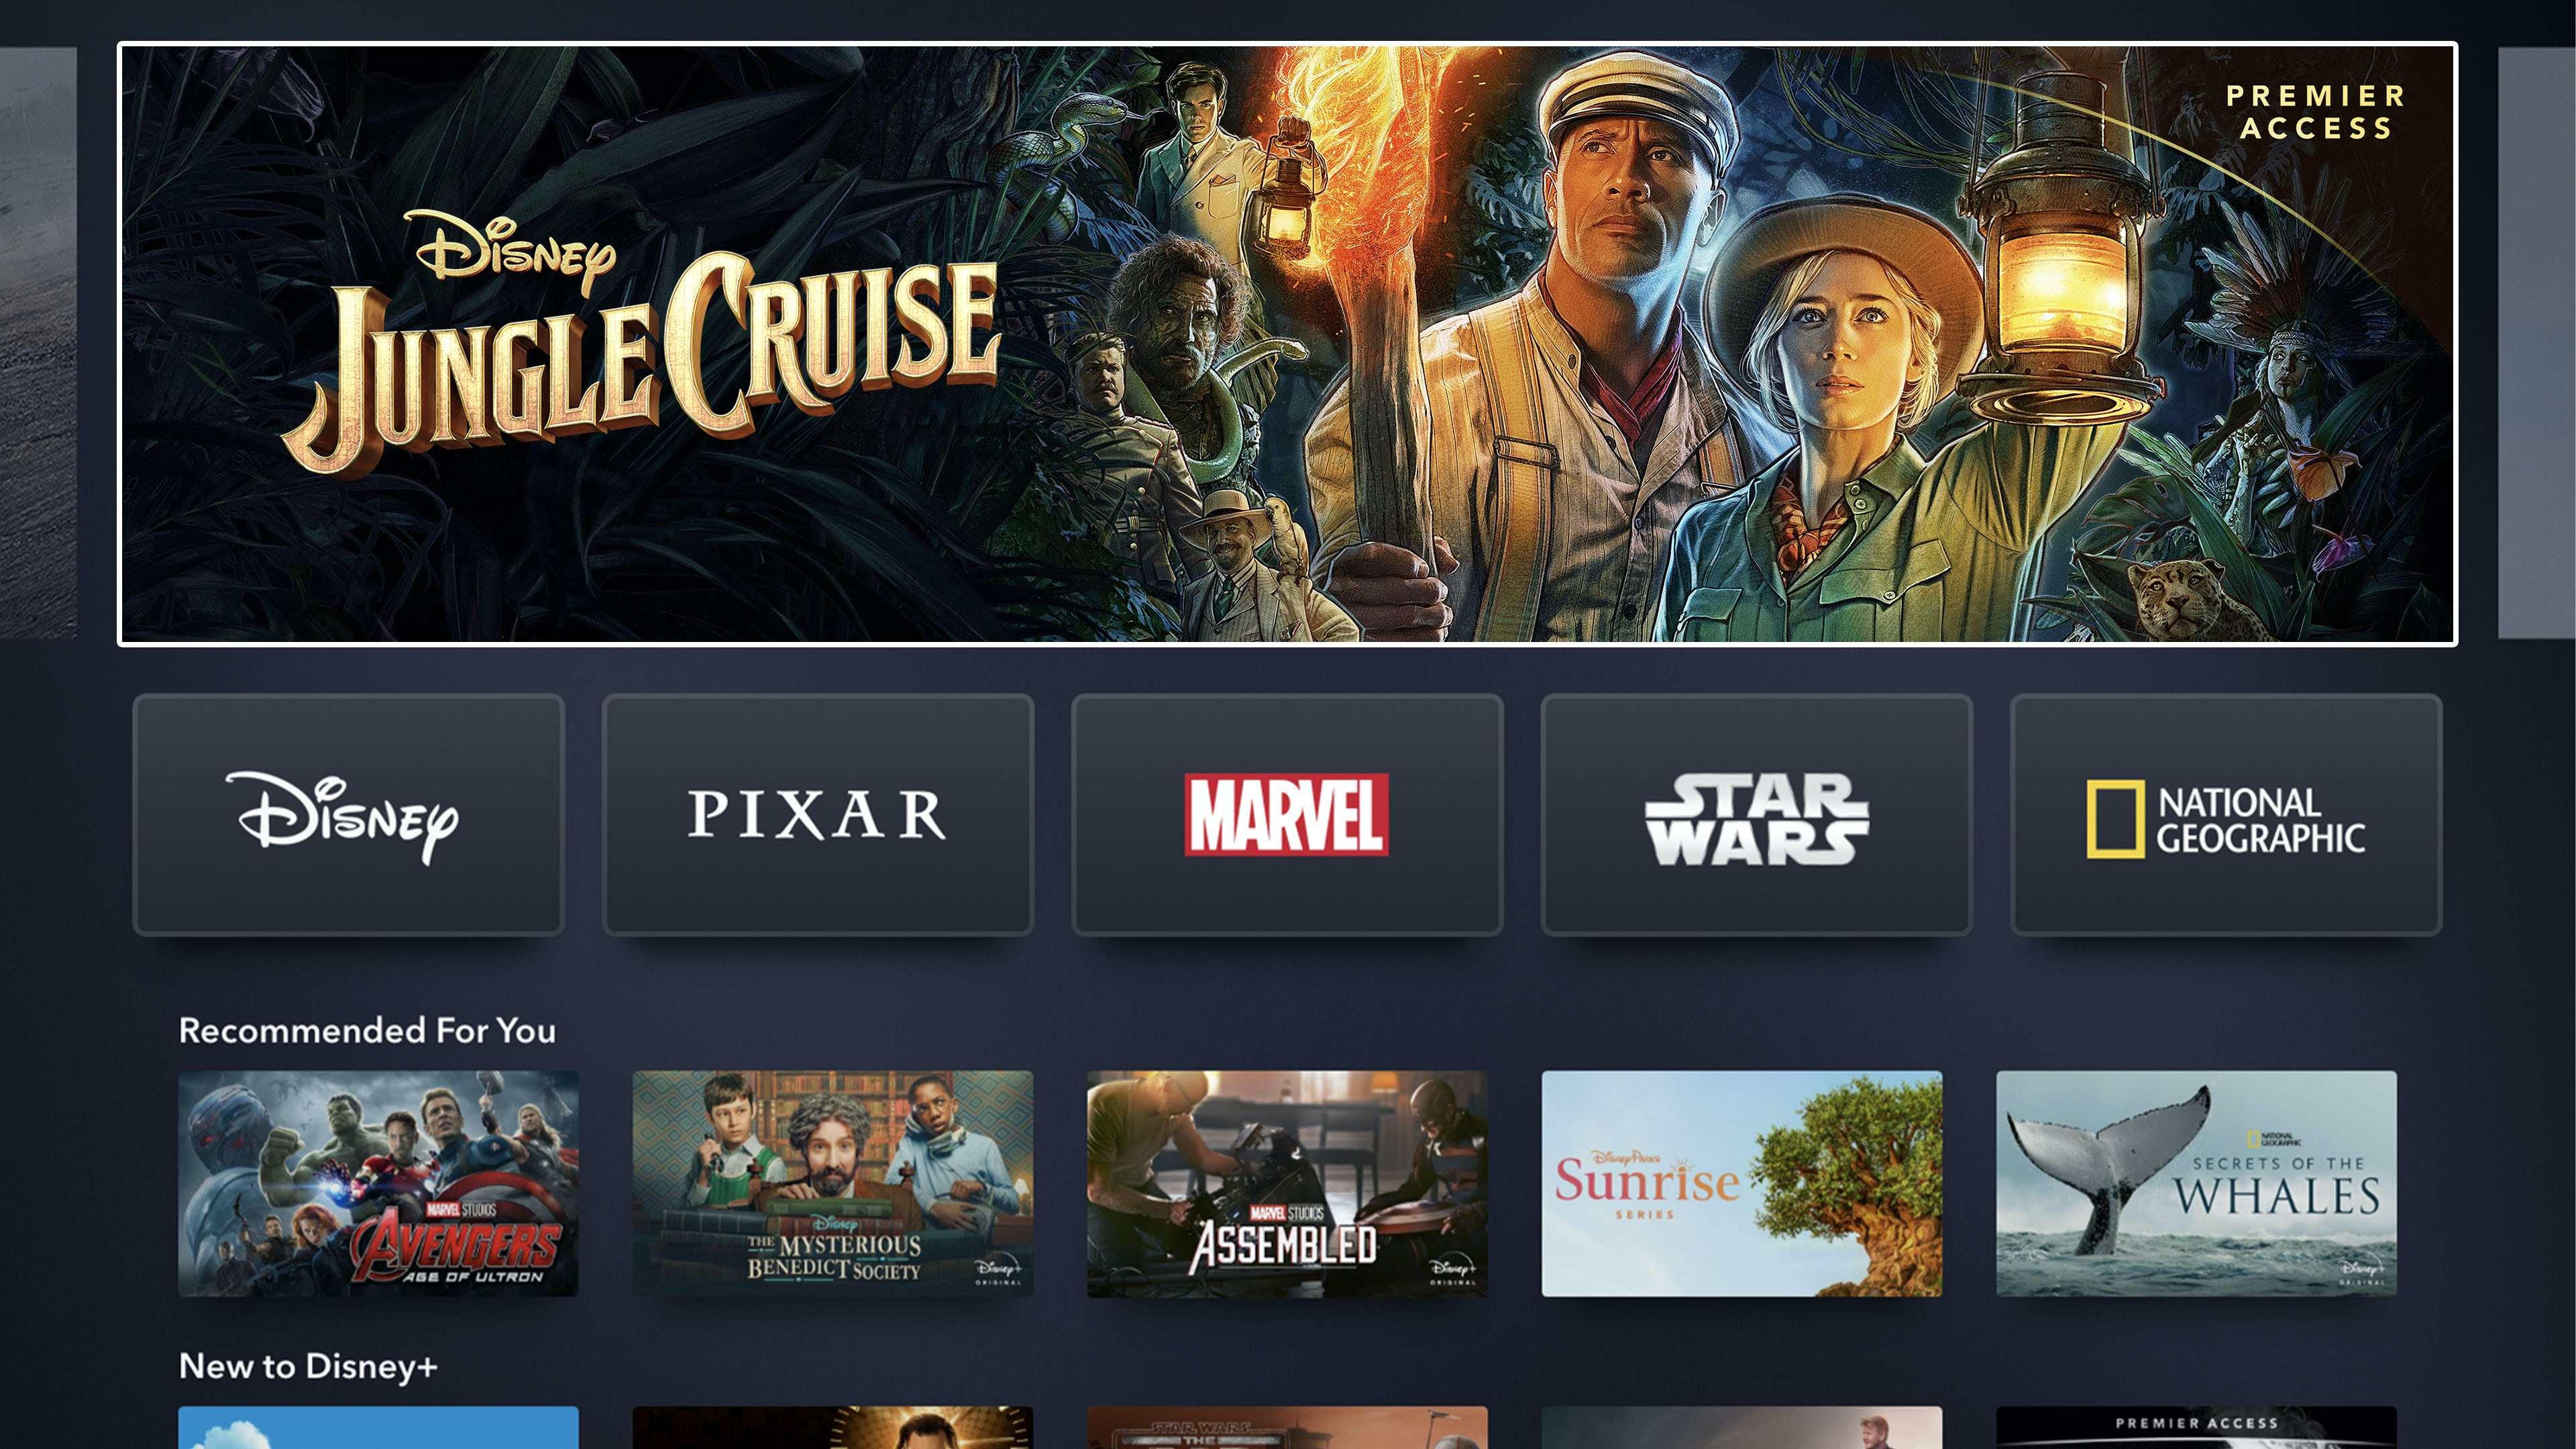 Disney+ App Home Page on Connected TV